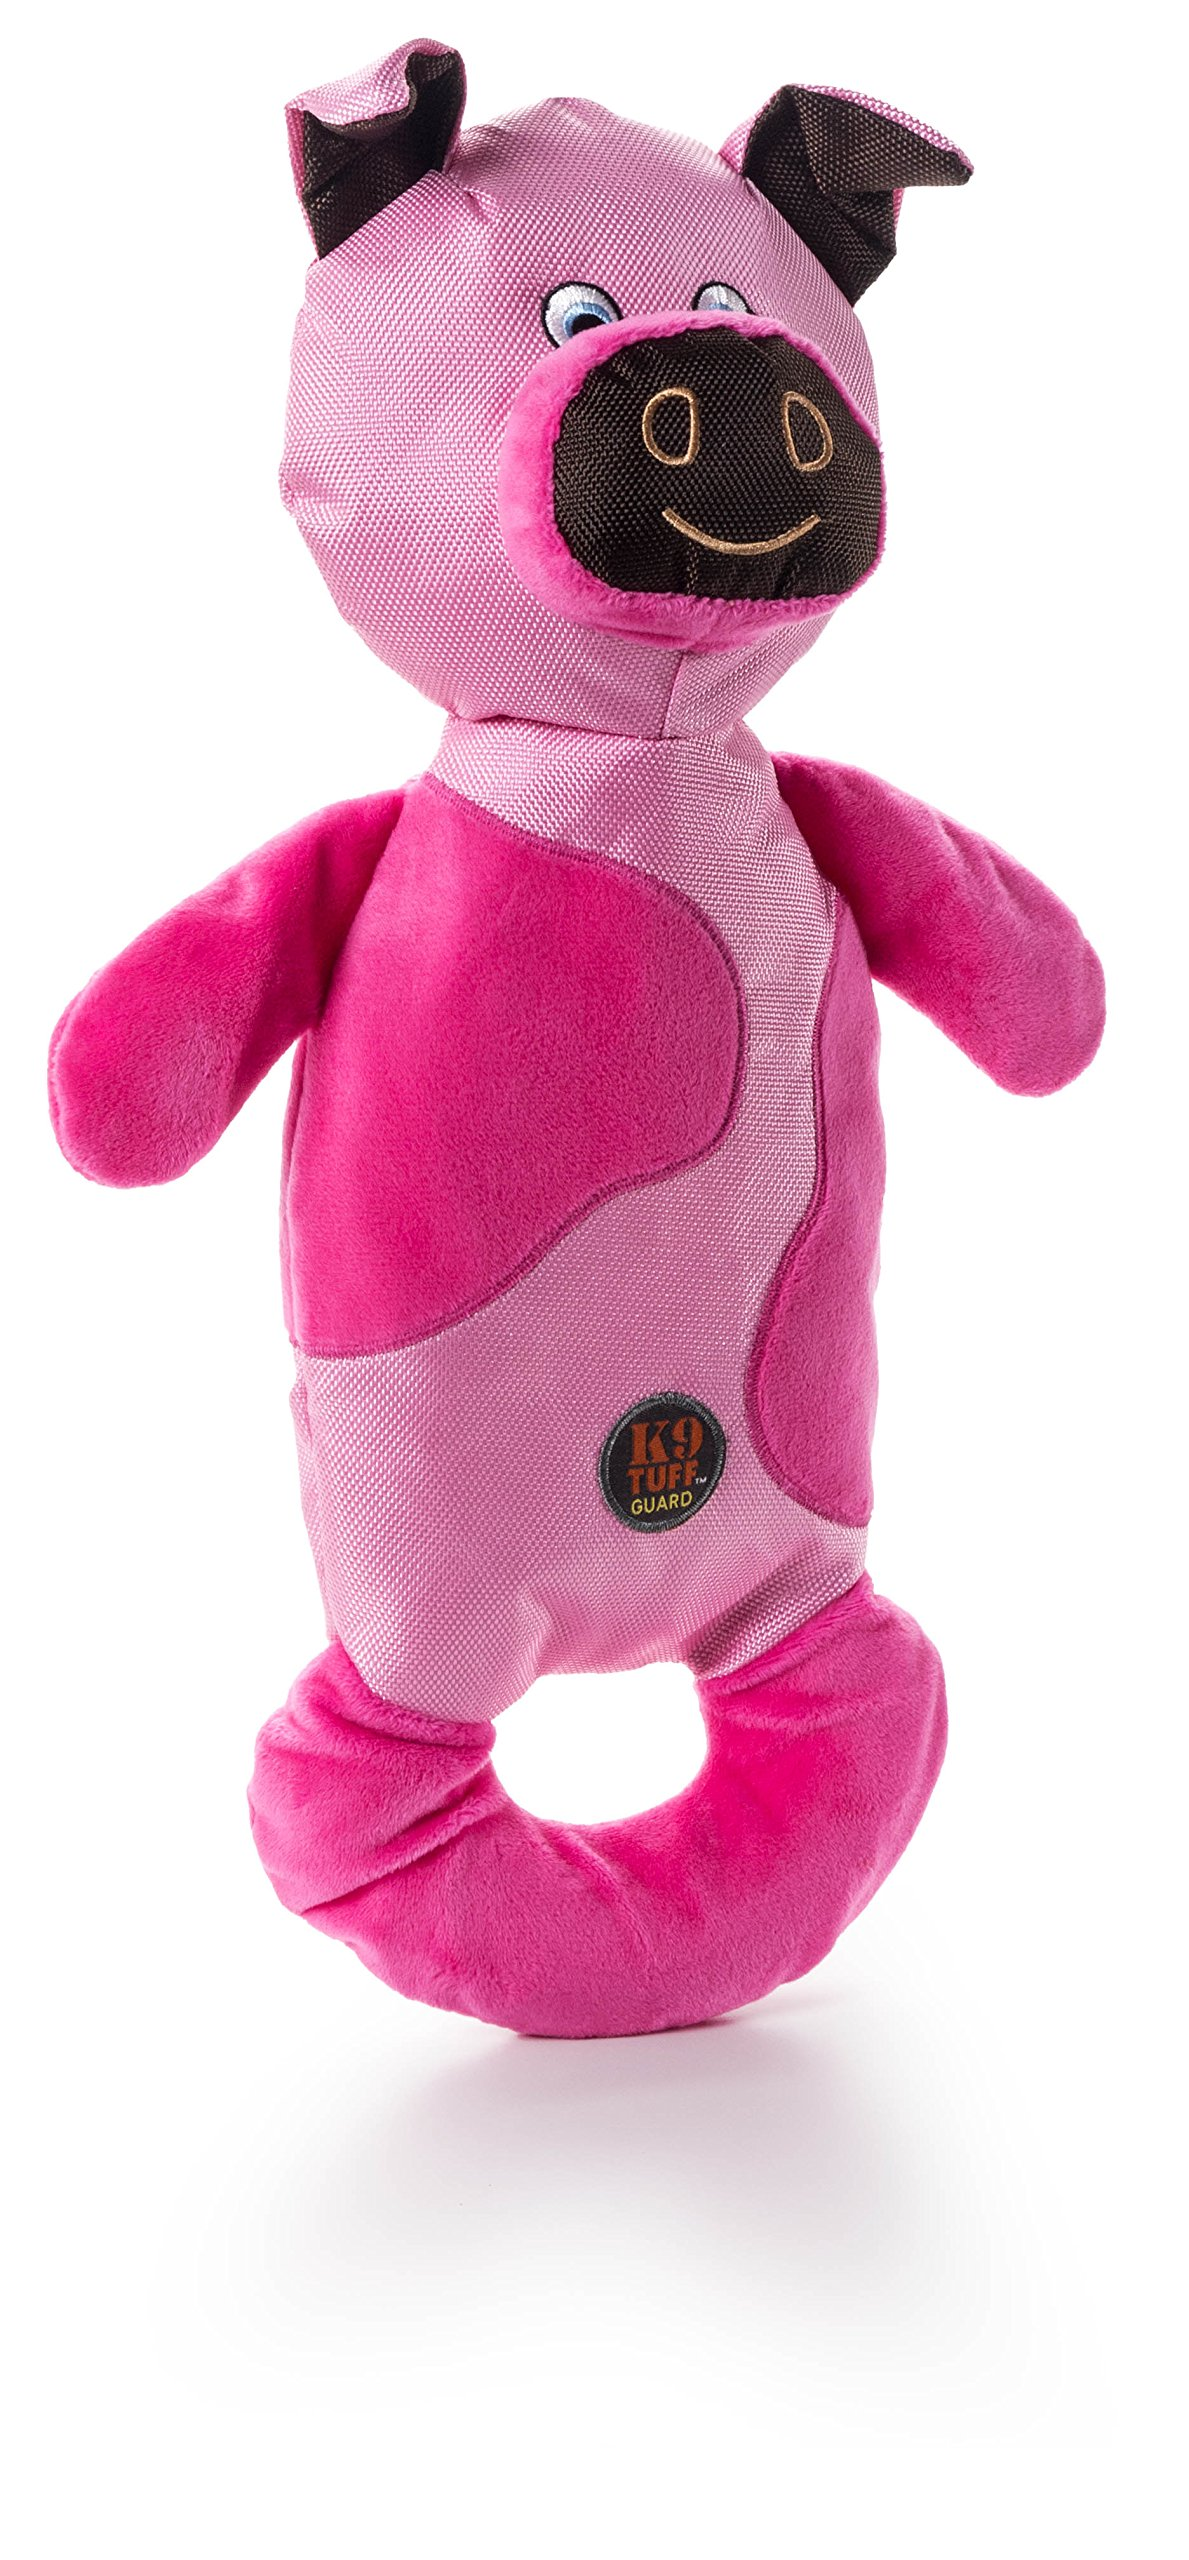 Charming 61376L Patches Large Pig Plush Toy